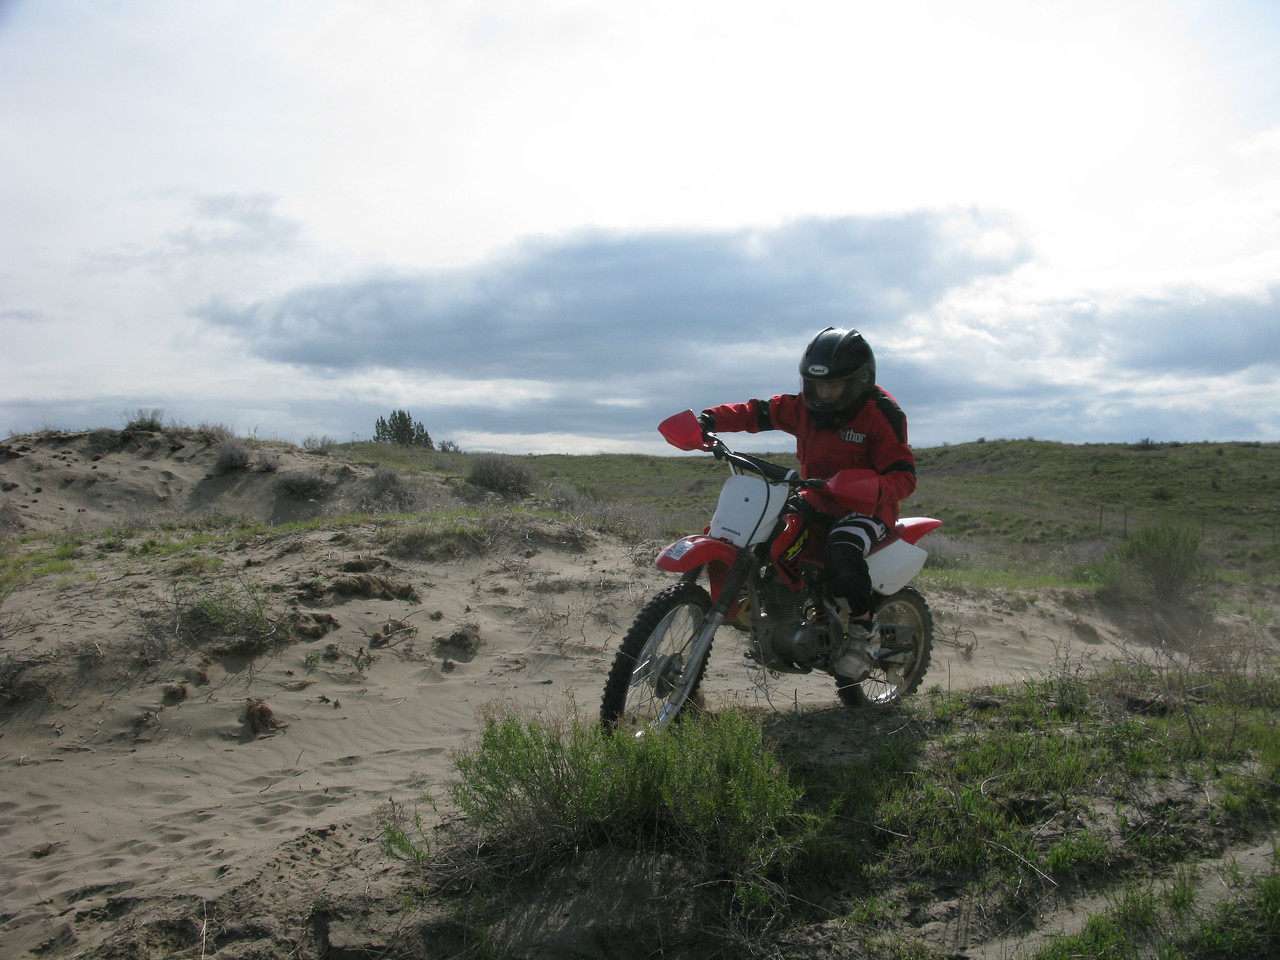 Always good to do some moto after camping!